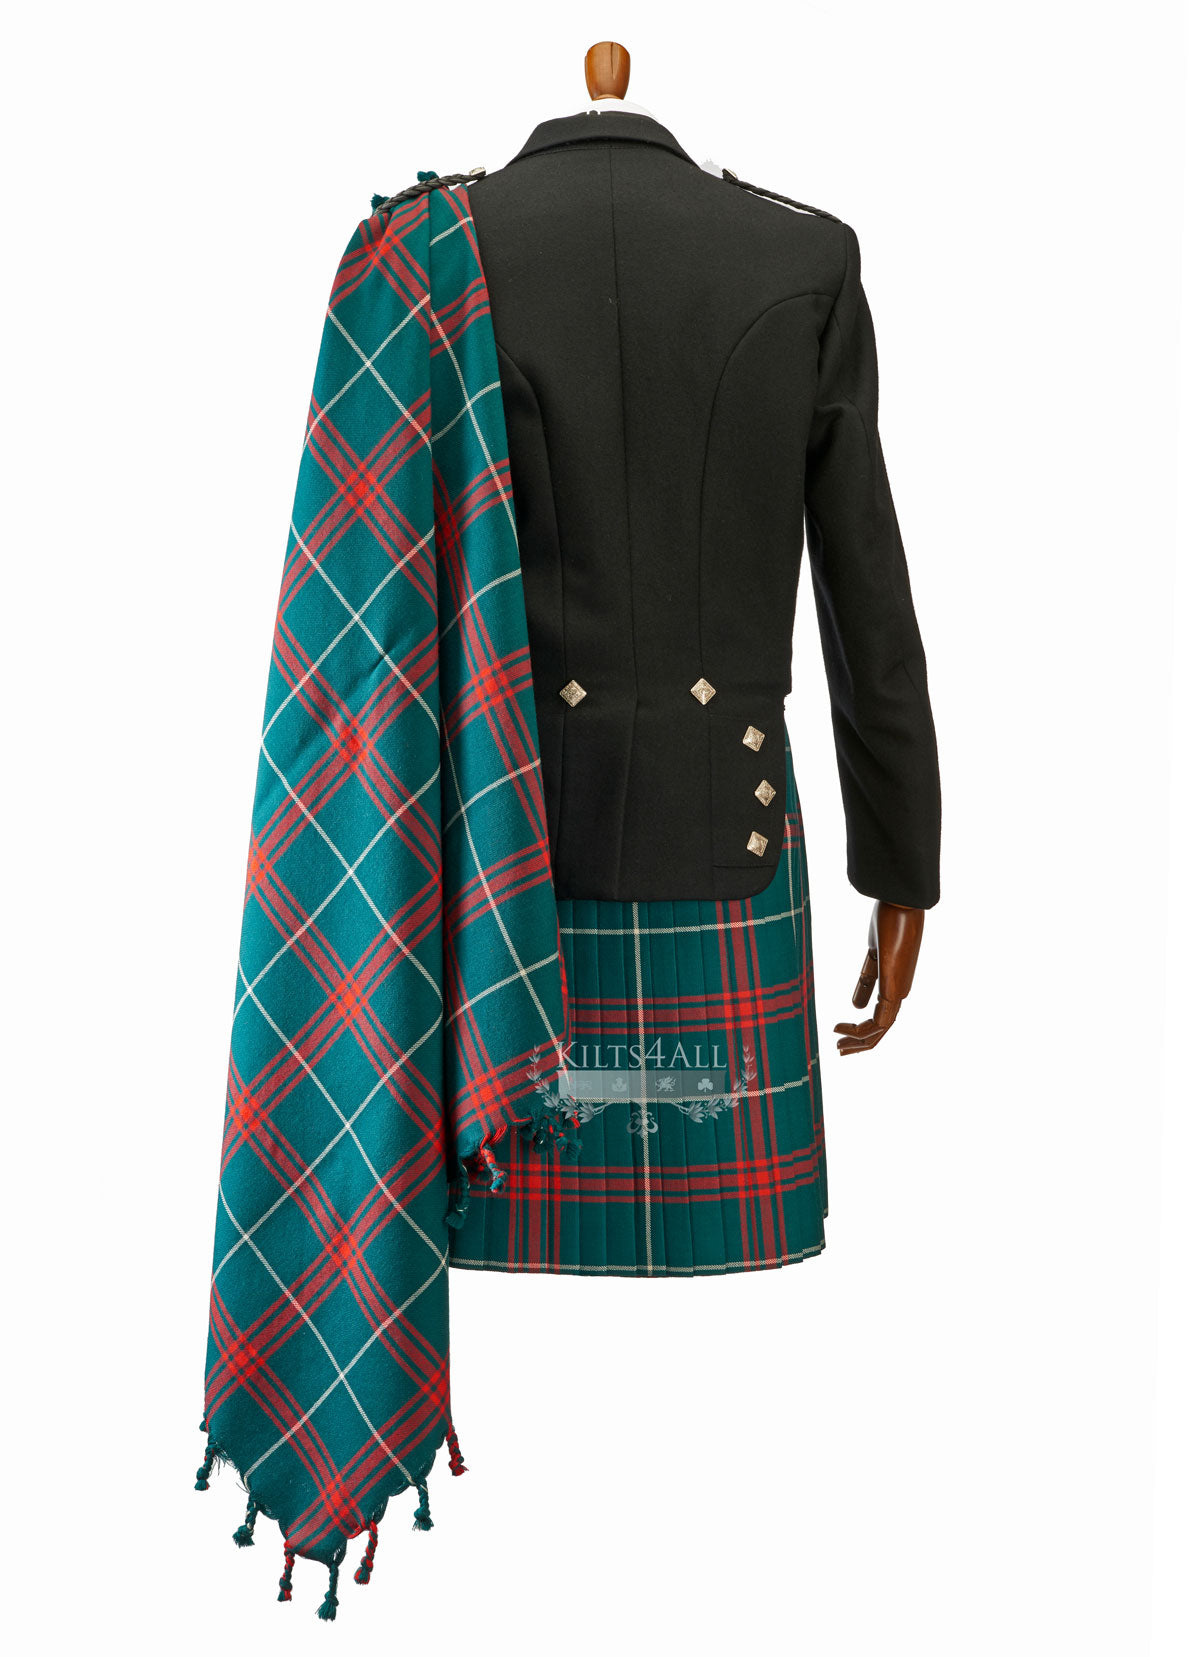 Mens Welsh National Tartan Kilt Outfit to Hire - Muted Black Argyll Jacket & Waistcoat